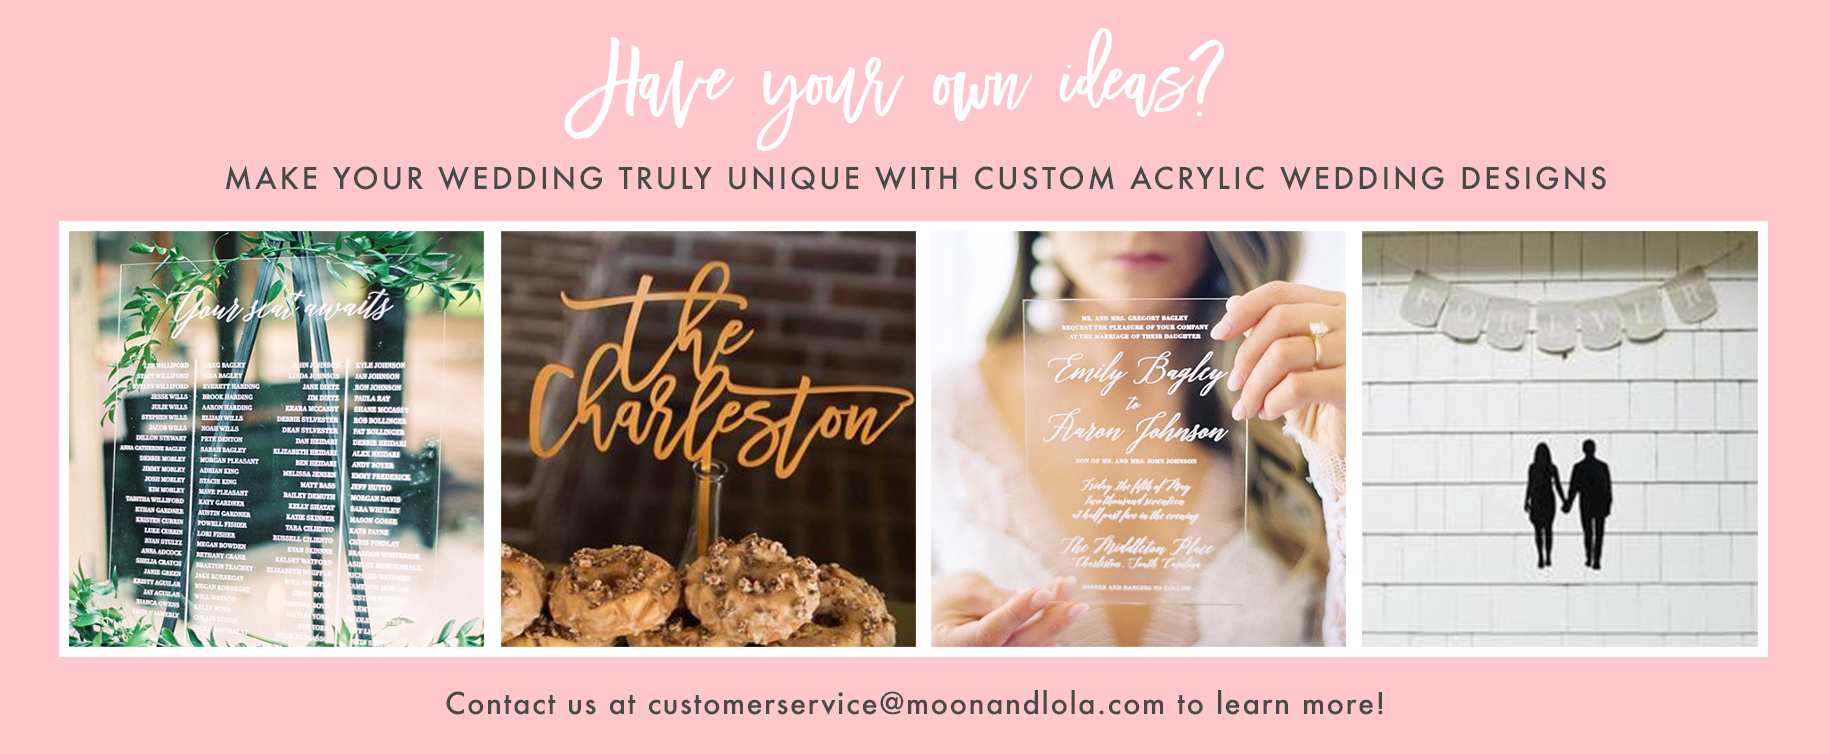 Moon and Lola - Custom Wedding Ideas